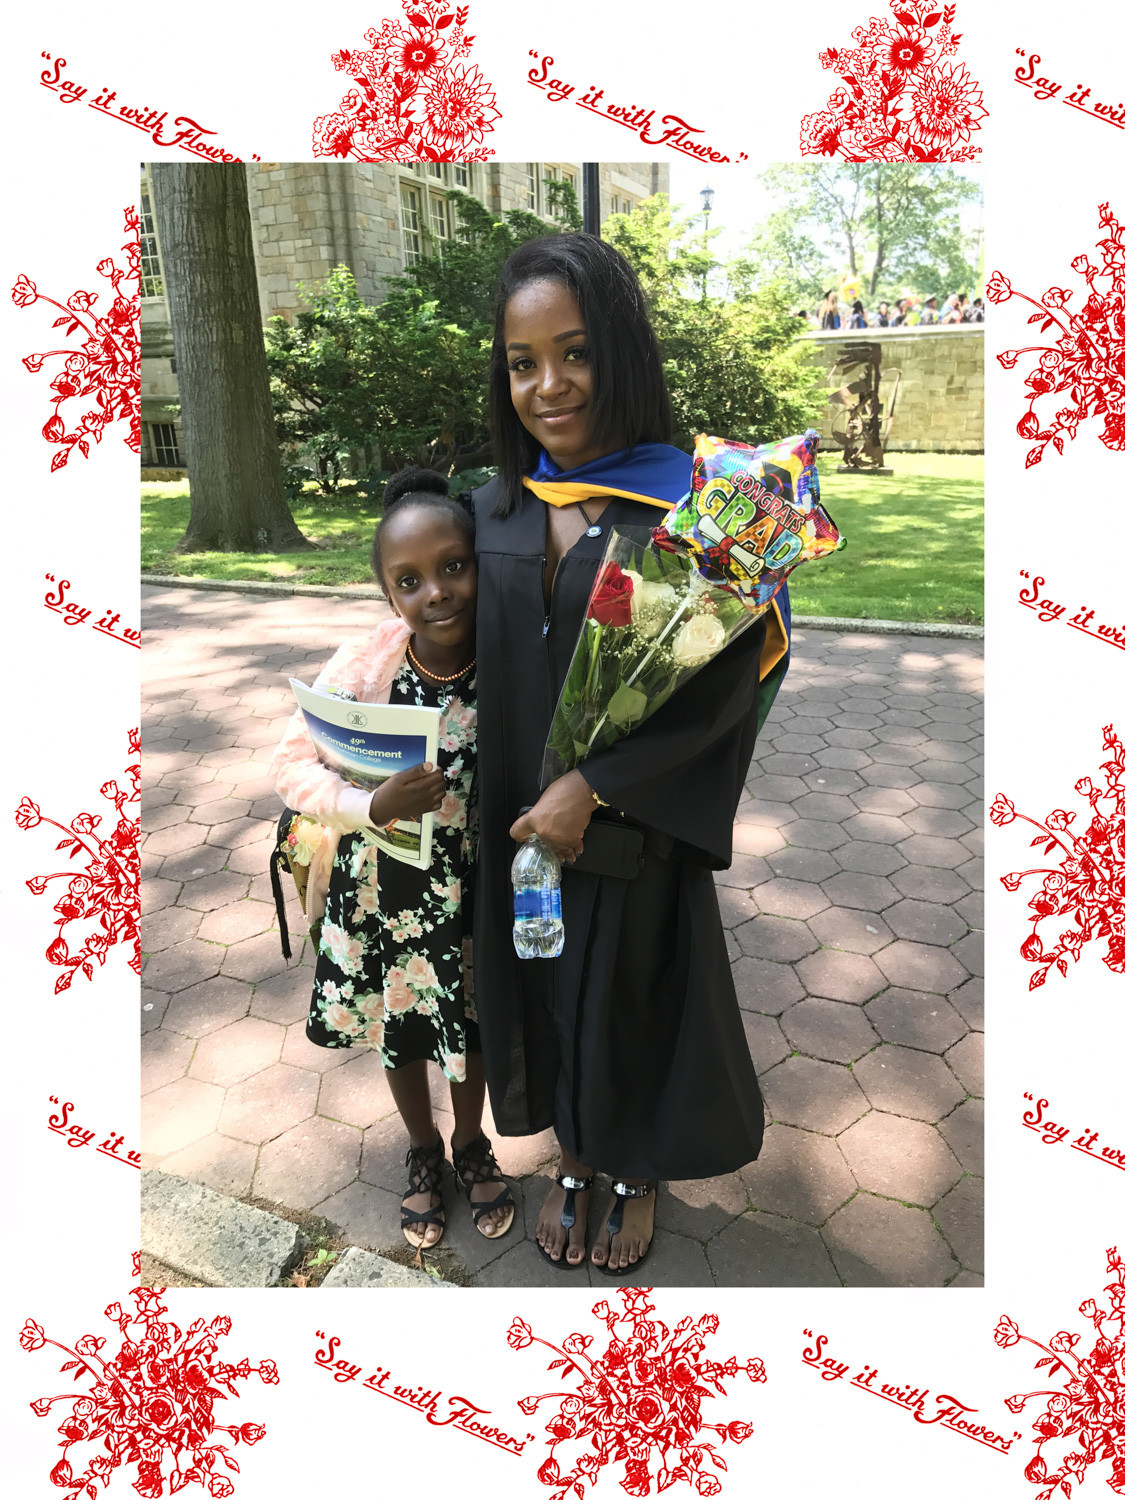 Artist Linda Stillman went as far as sitting through a Lehman College graduation on a sunny day in May to capture graduates with flower bouquets in hand. Stillman captured them and others who purchased flowers for various reasons in her exhibit 'Say it With Flowers' at the Montefiore Medical Center's ArtViews Gallery at 110 E. 210th St.